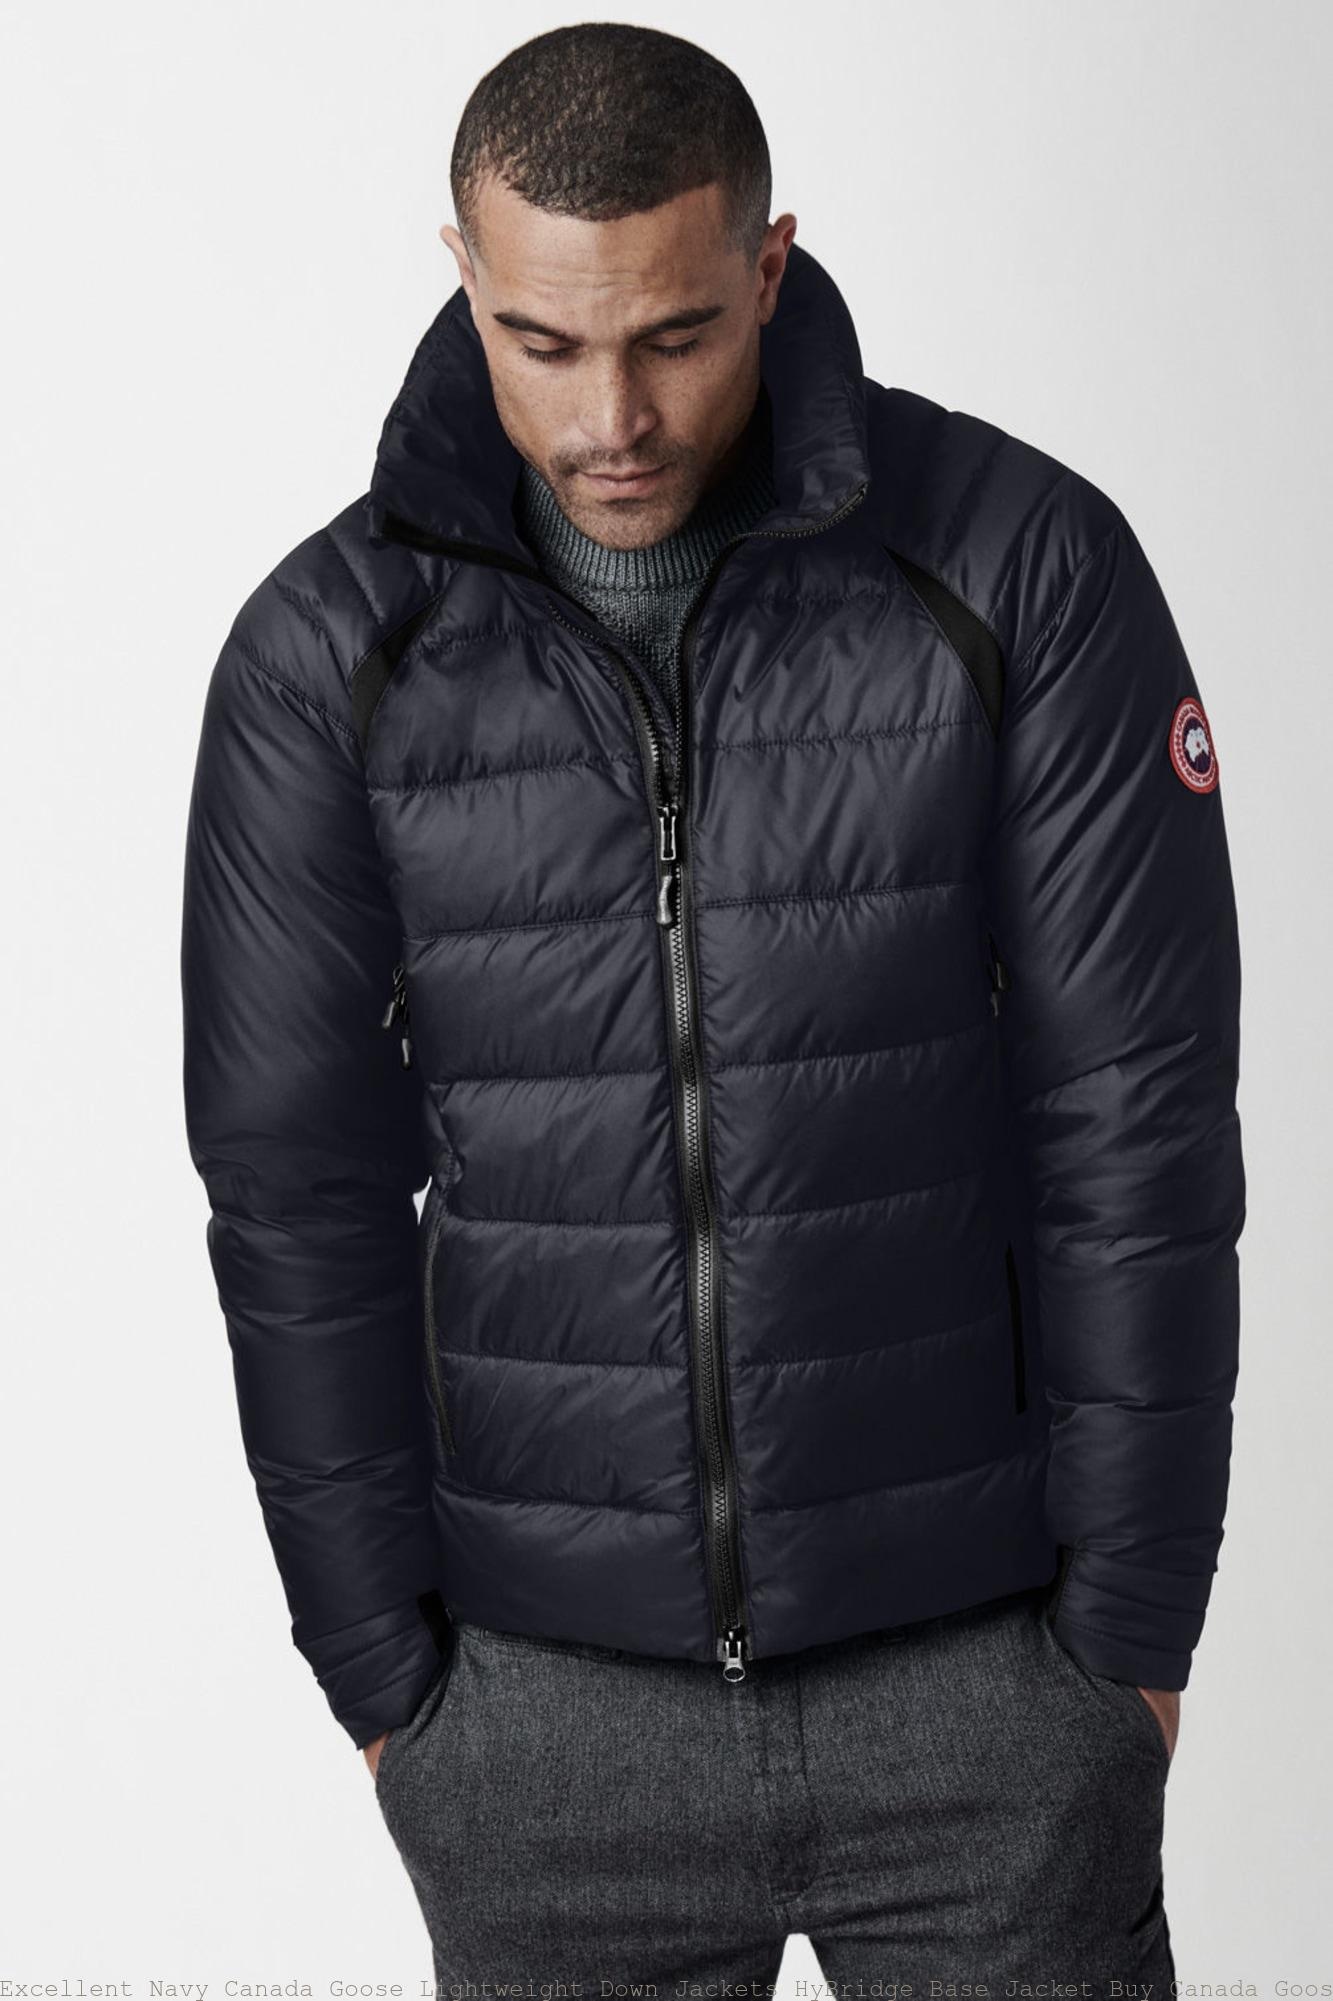 cf0ff646d07 Excellent Navy Canada Goose Lightweight Down Jackets HyBridge Base Jacket  Buy Canada Goose Jacket 2729M